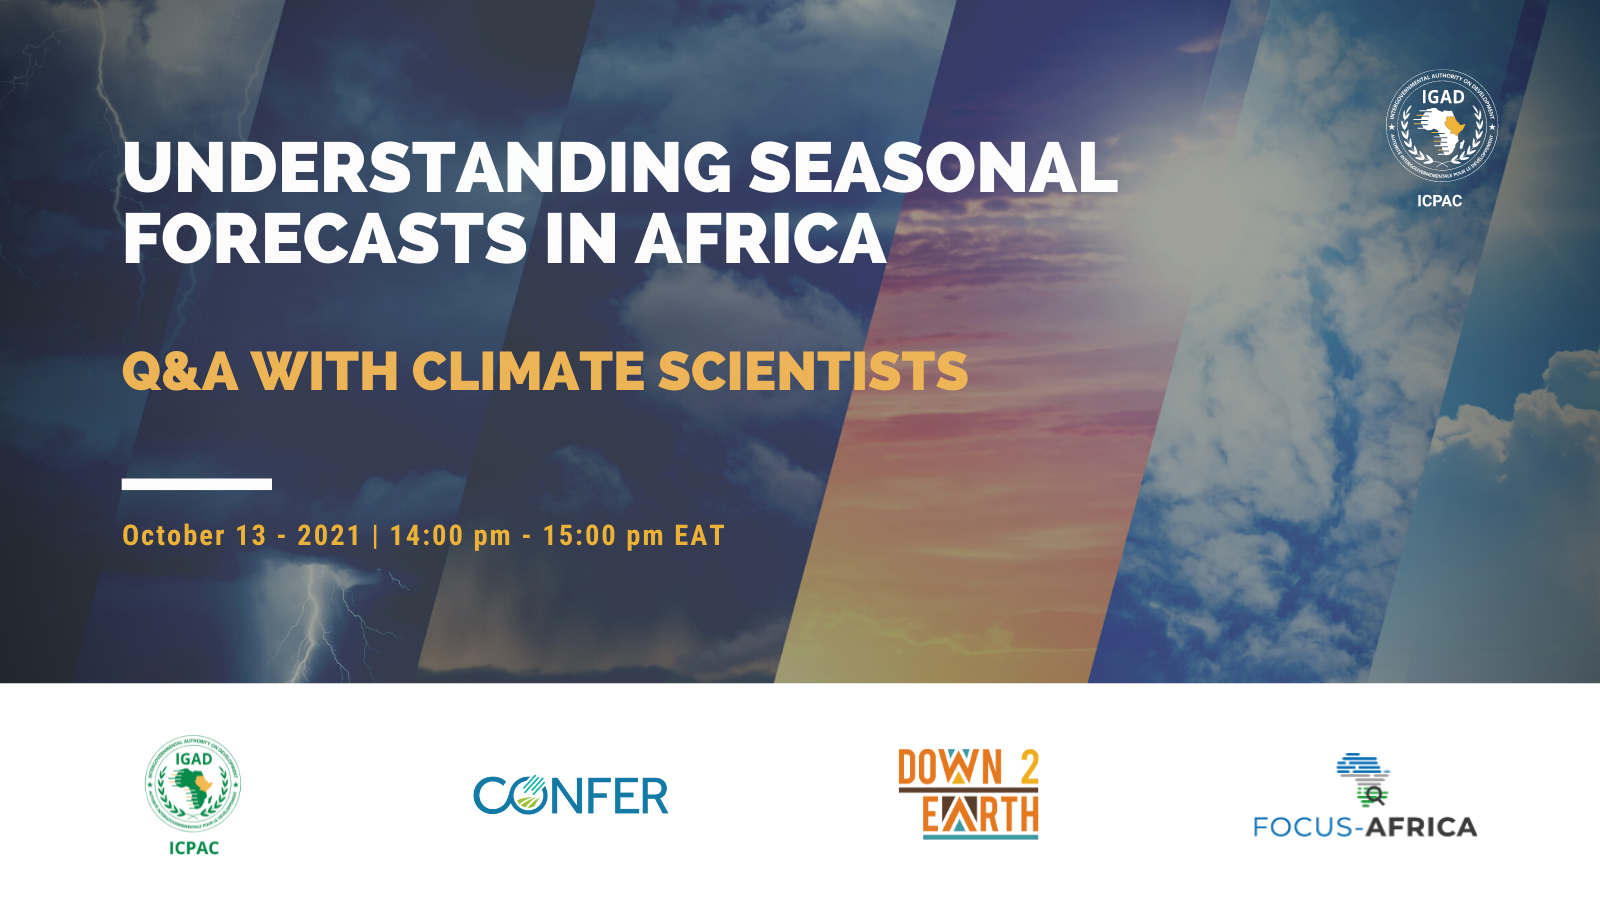 _DOWN2EARTH_ is co-hosting a webinar on forecasting!